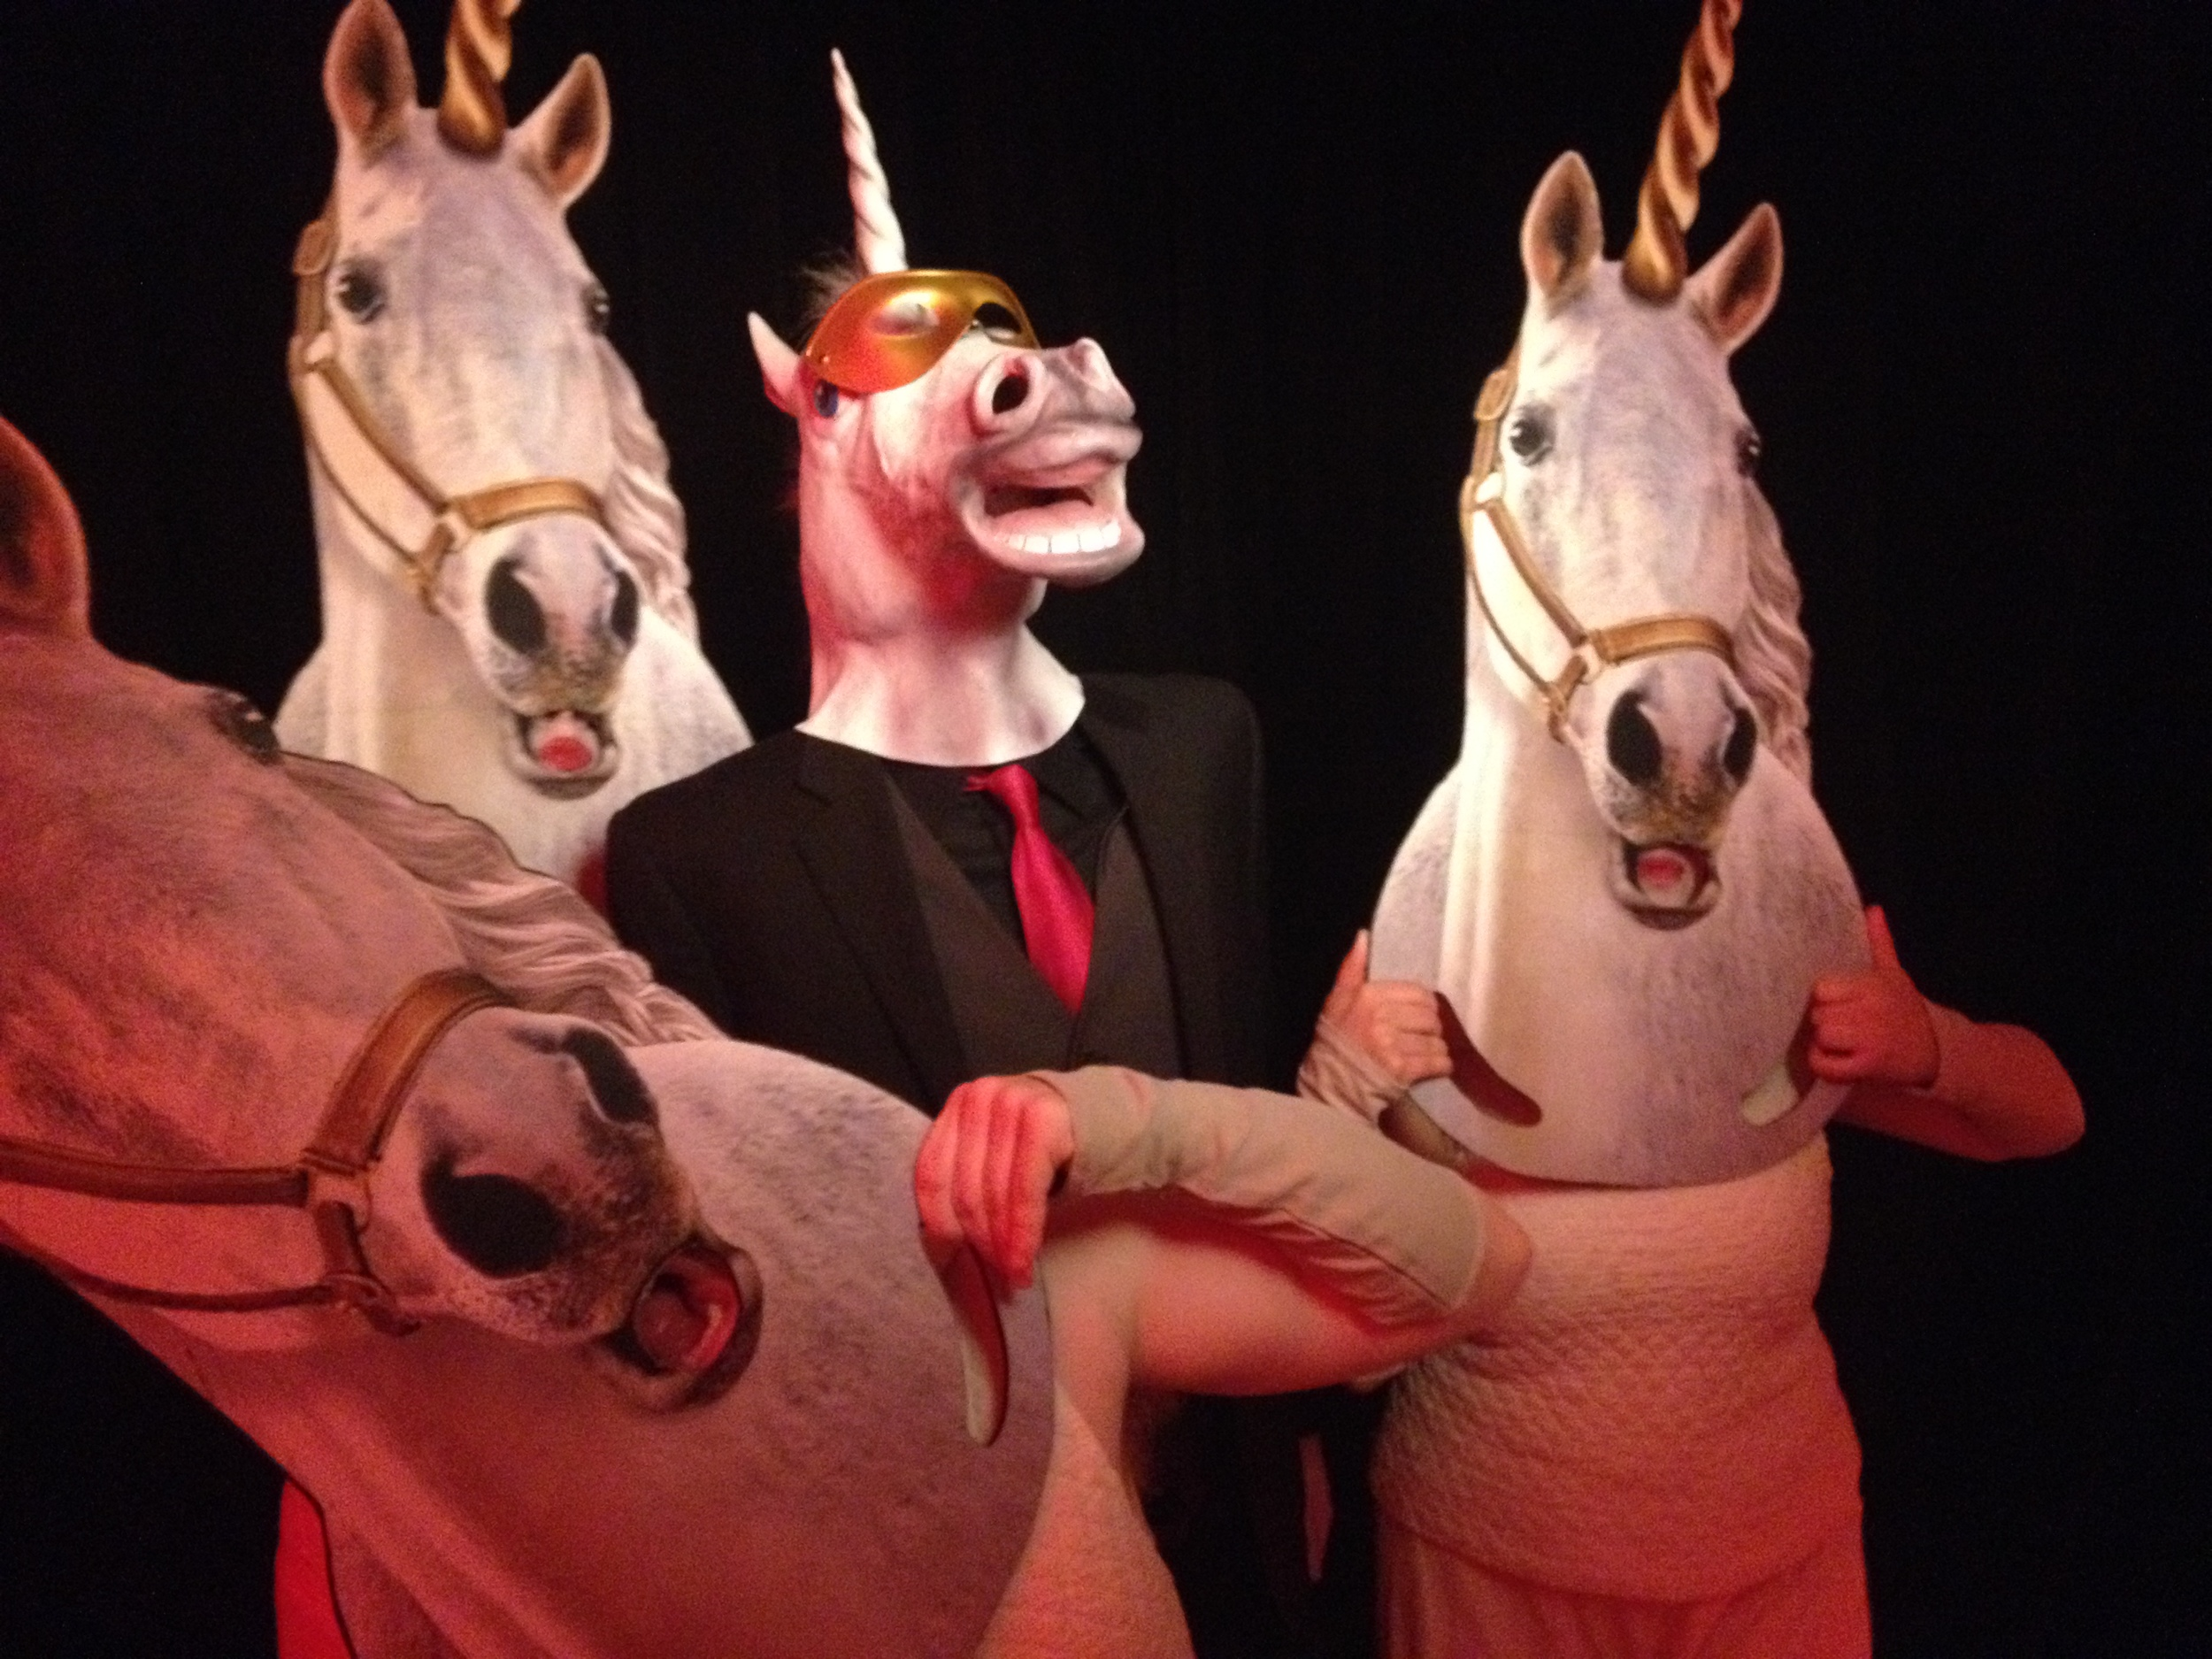 These performance artist unicorns came out of nowhere and were singing and dancing.